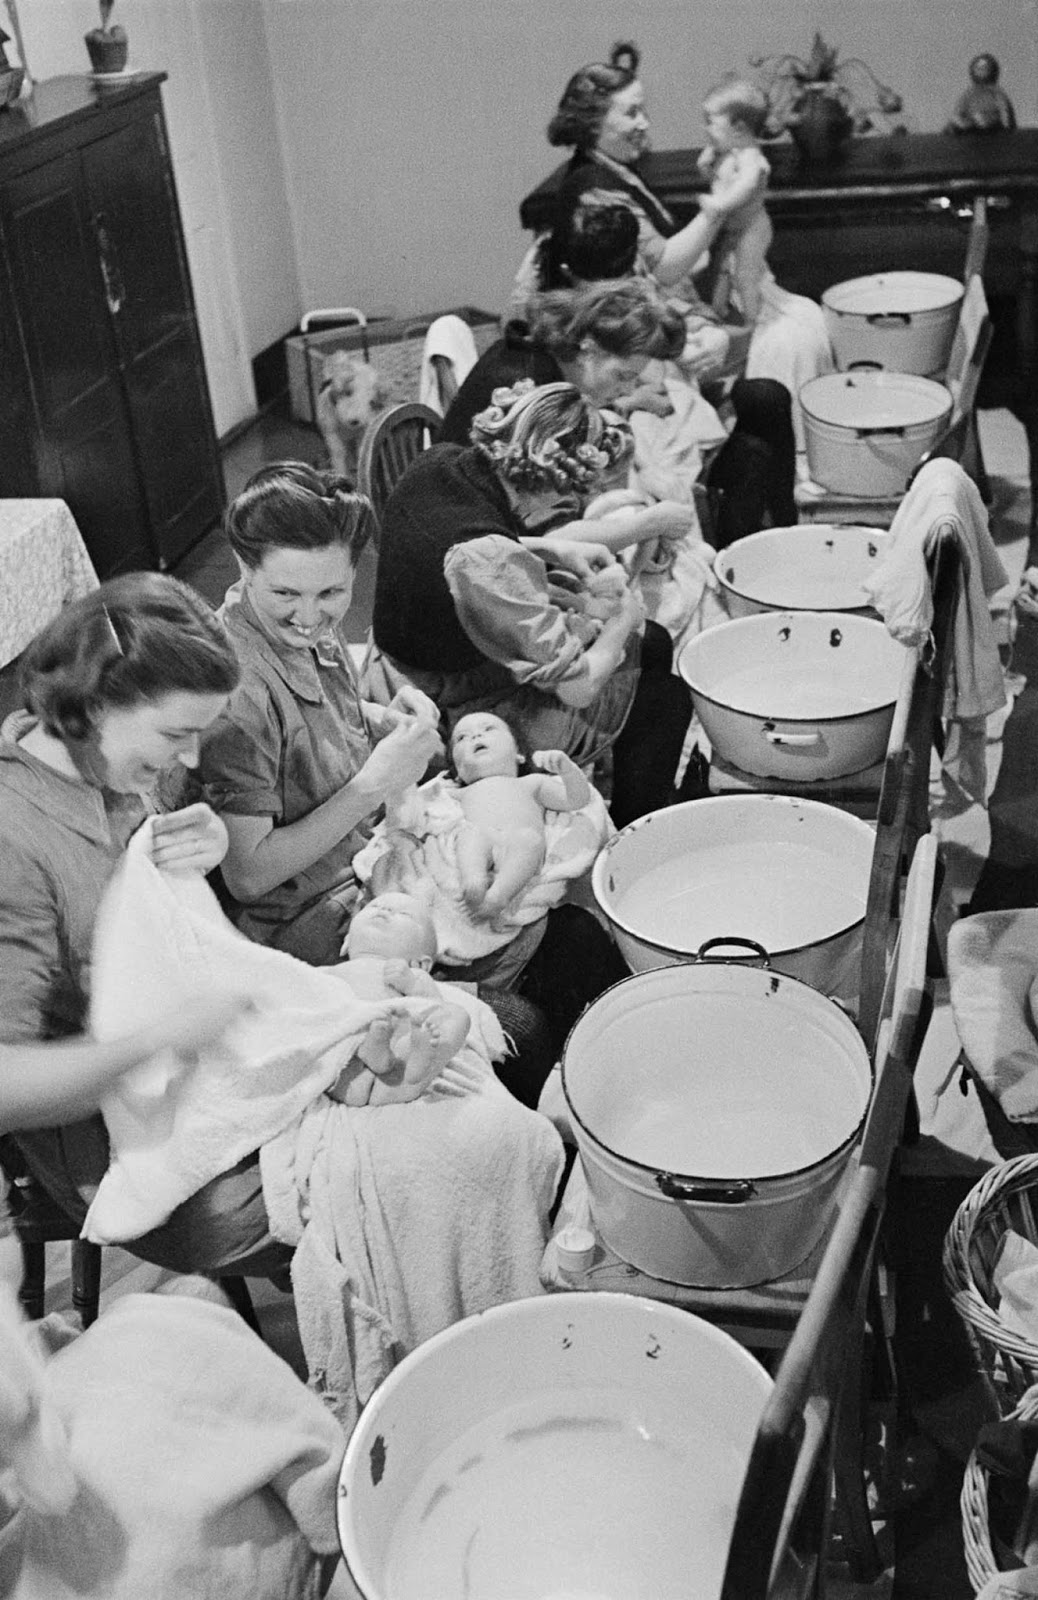 Prisoner mothers bathe their babies in a hospital ward at Holloway Prison in London, 1947.